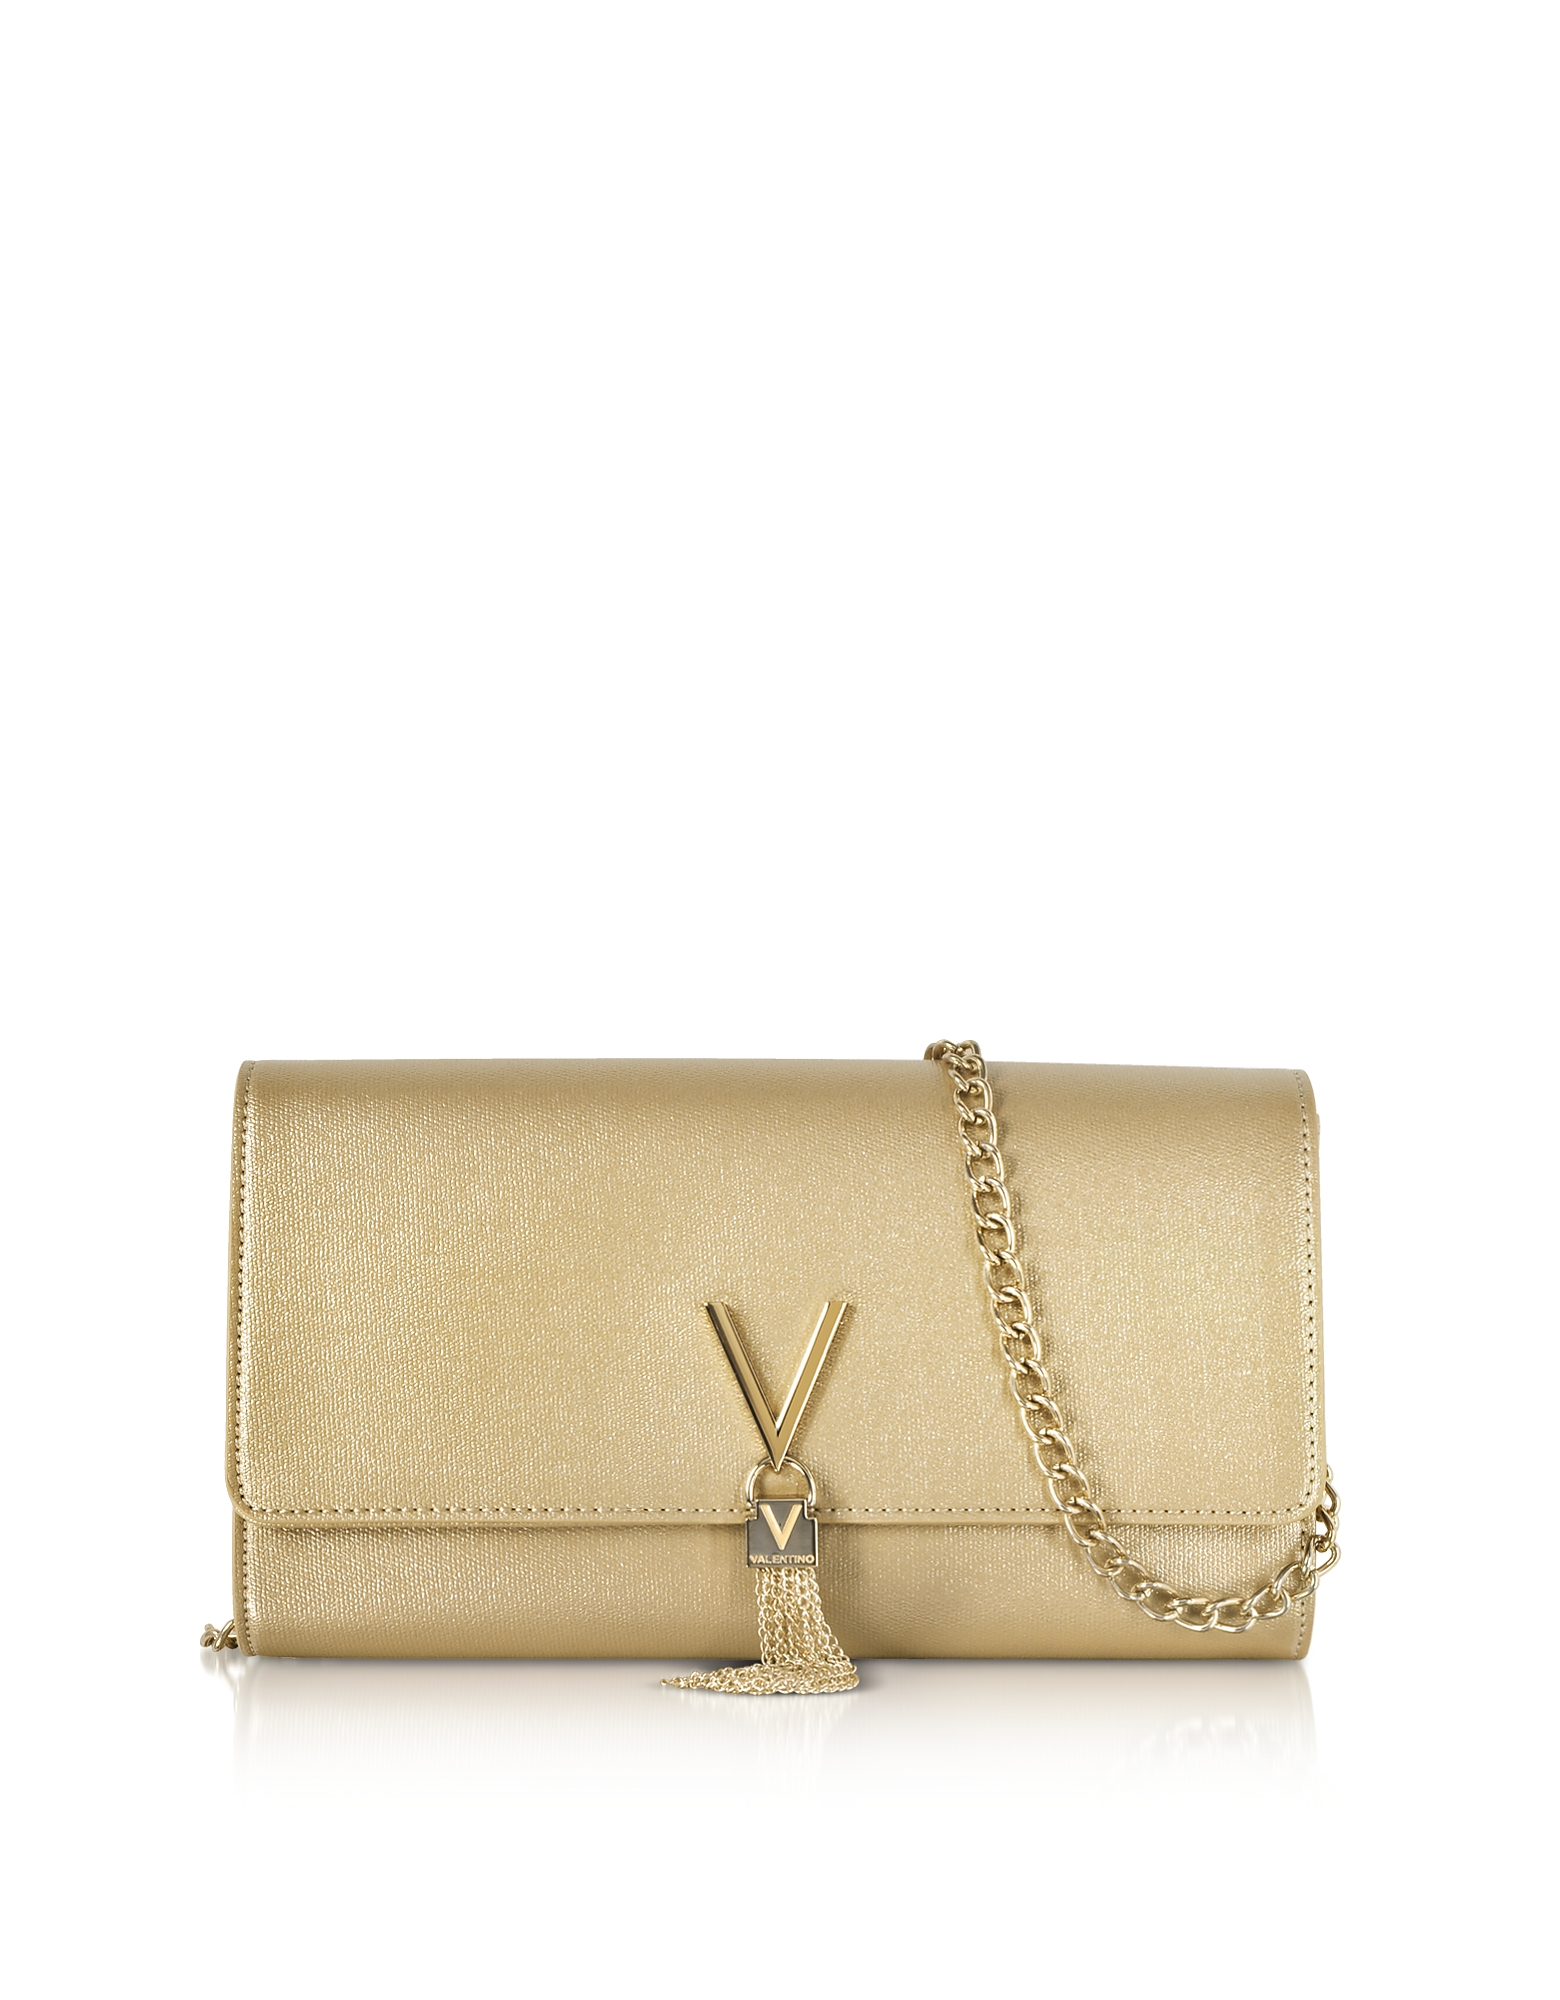 Eco Grained Leather Marilyn Shoulder Bag